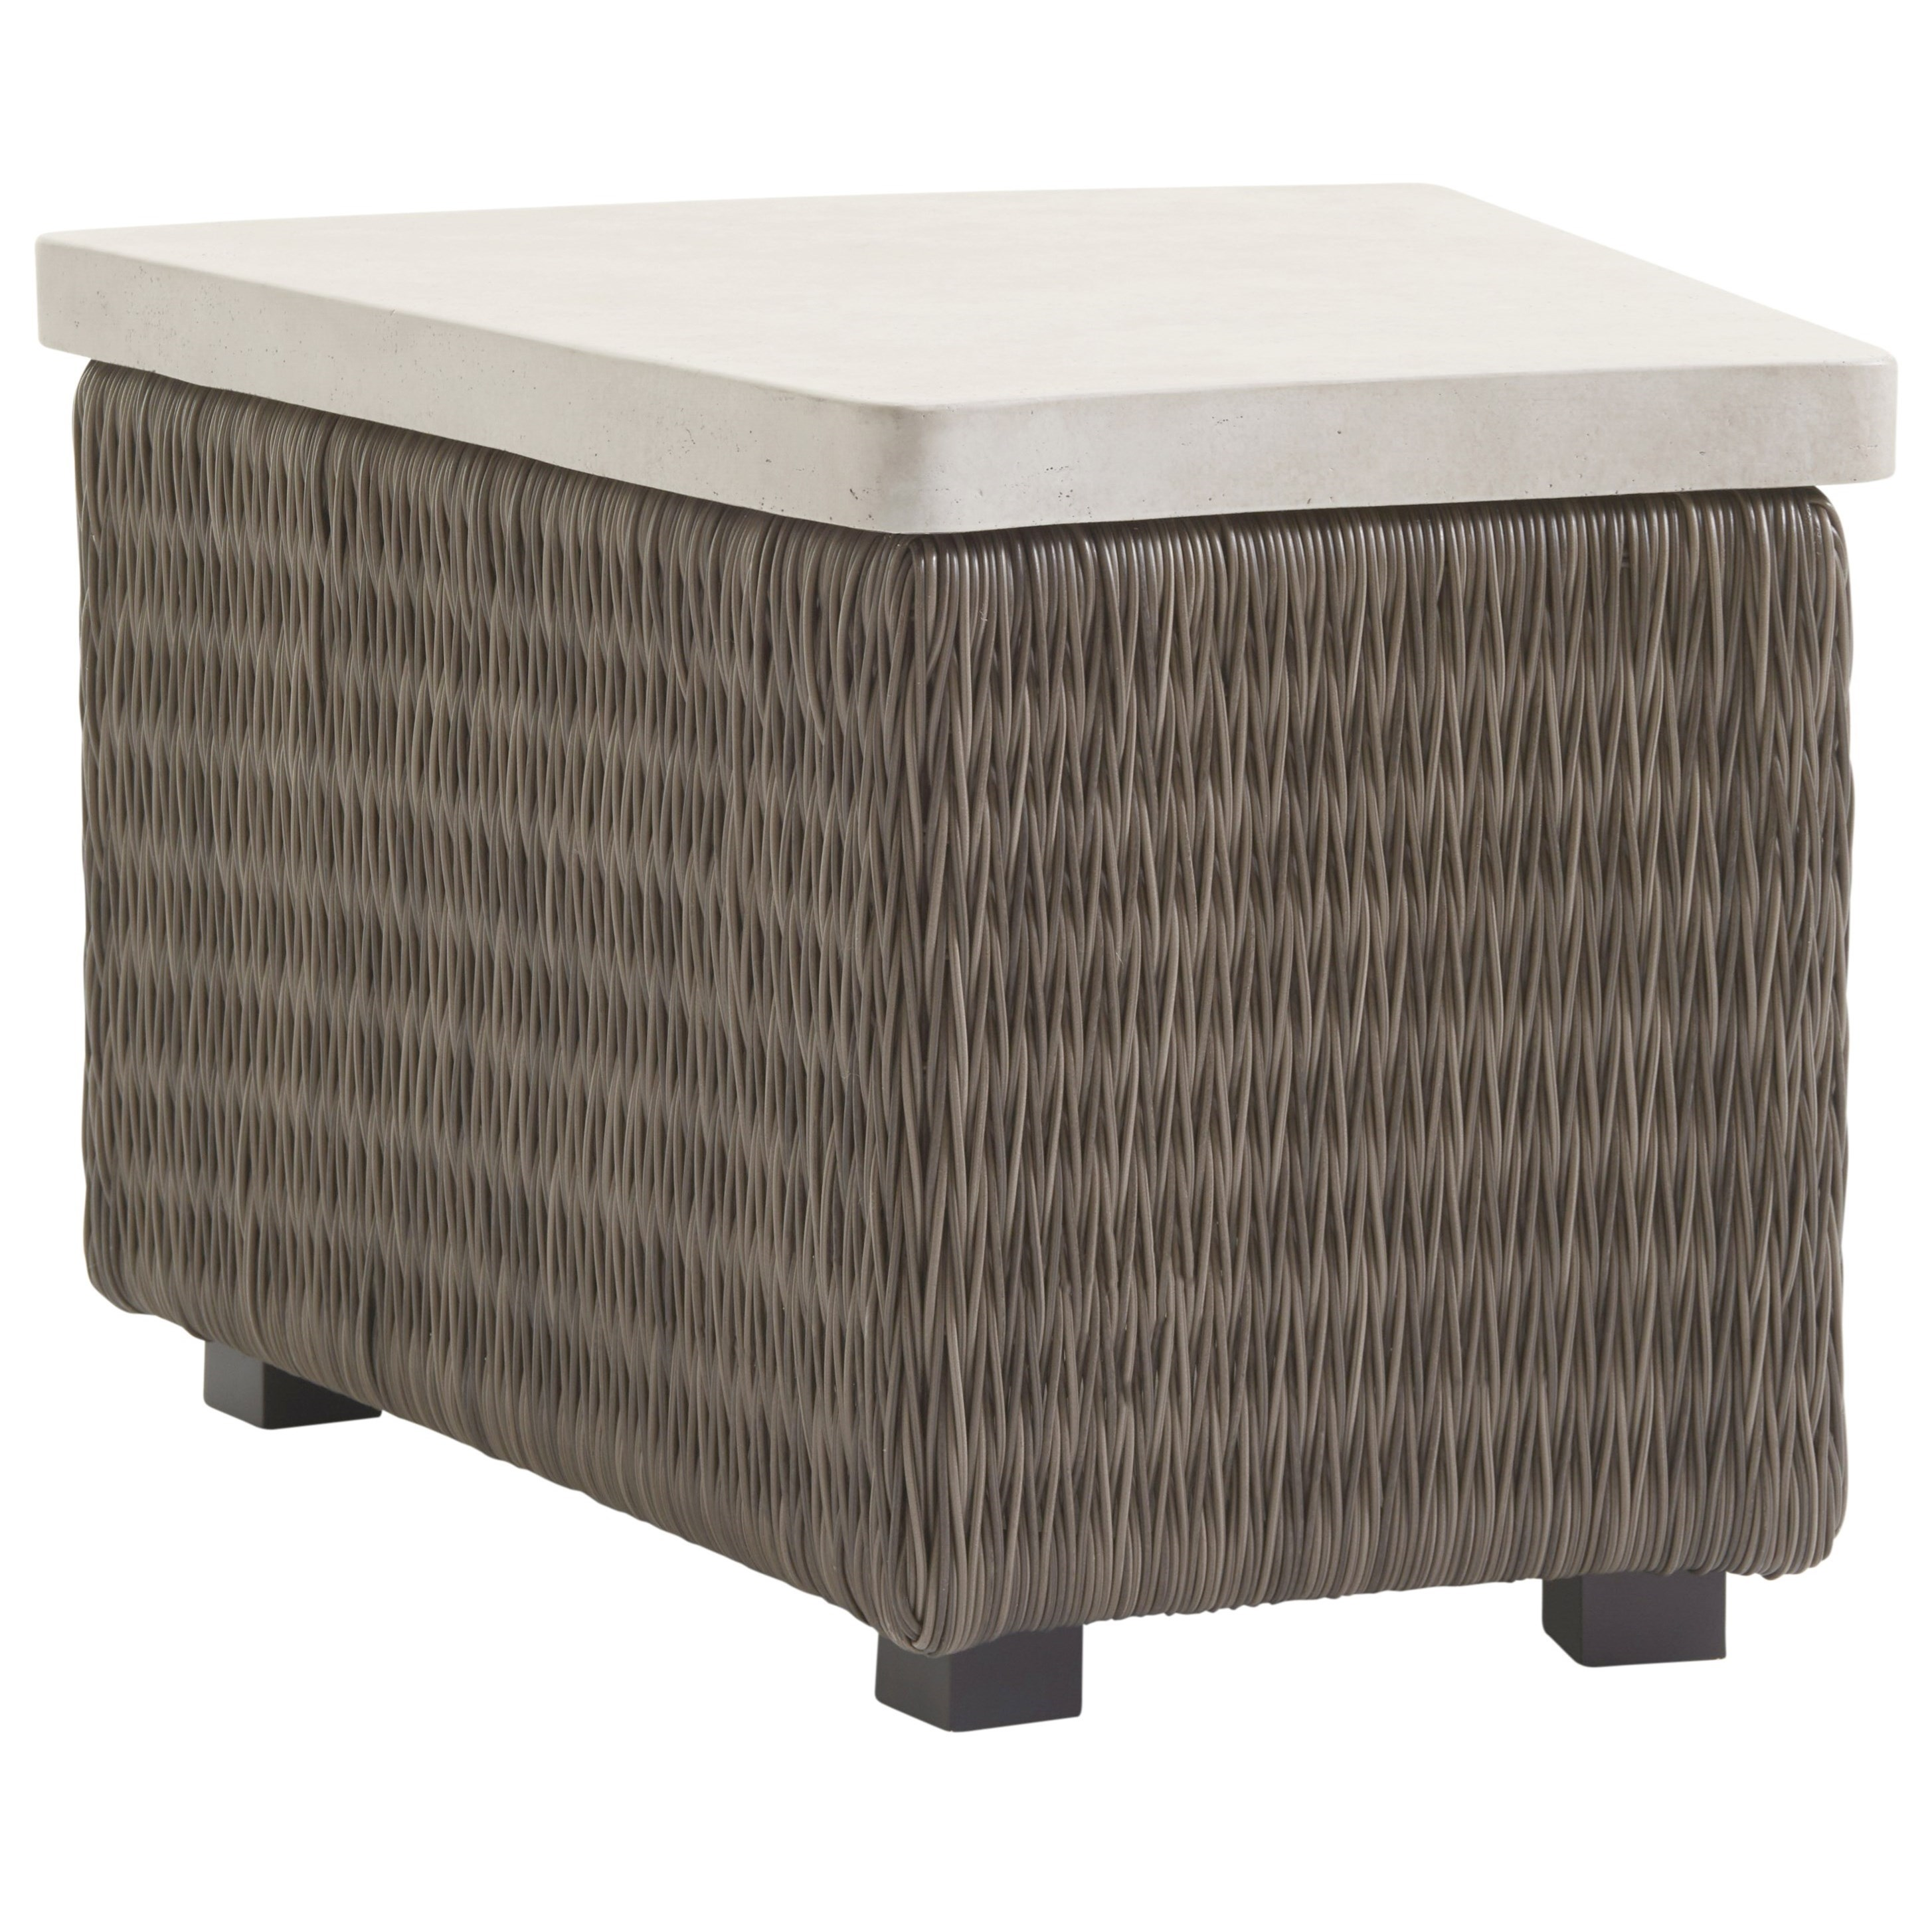 Cypress Point Ocean Terrace Outdoor Wedge Table with Weatherstone Top by Tommy Bahama Outdoor Living at Baer's Furniture